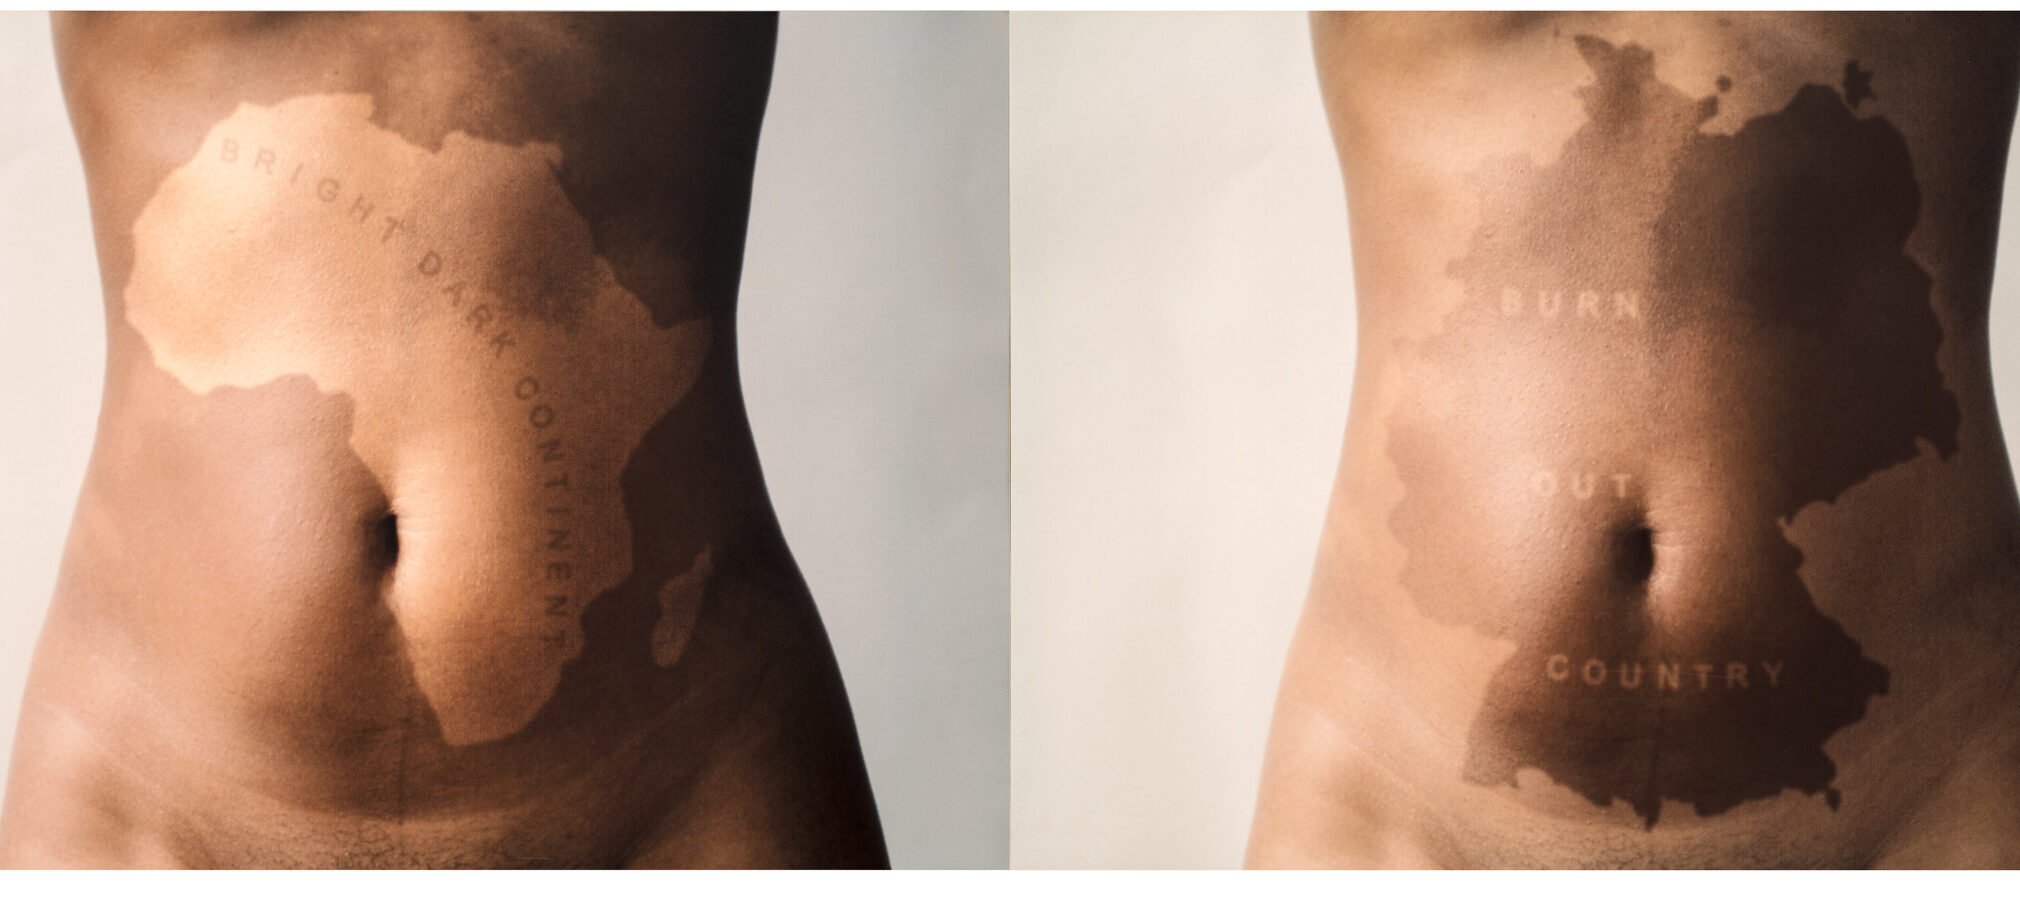 """A photograph diptych. The left image depicts a dark-skinned torso with a light-skinned shape of Africa on it and """"BRIGHT DARK CONTINENT"""" written on the shape. The right image depicts a light-skinned torso with a dark-skinned shape of Germany on it and """"BURN OUT COUNTRY"""" written on the shape."""